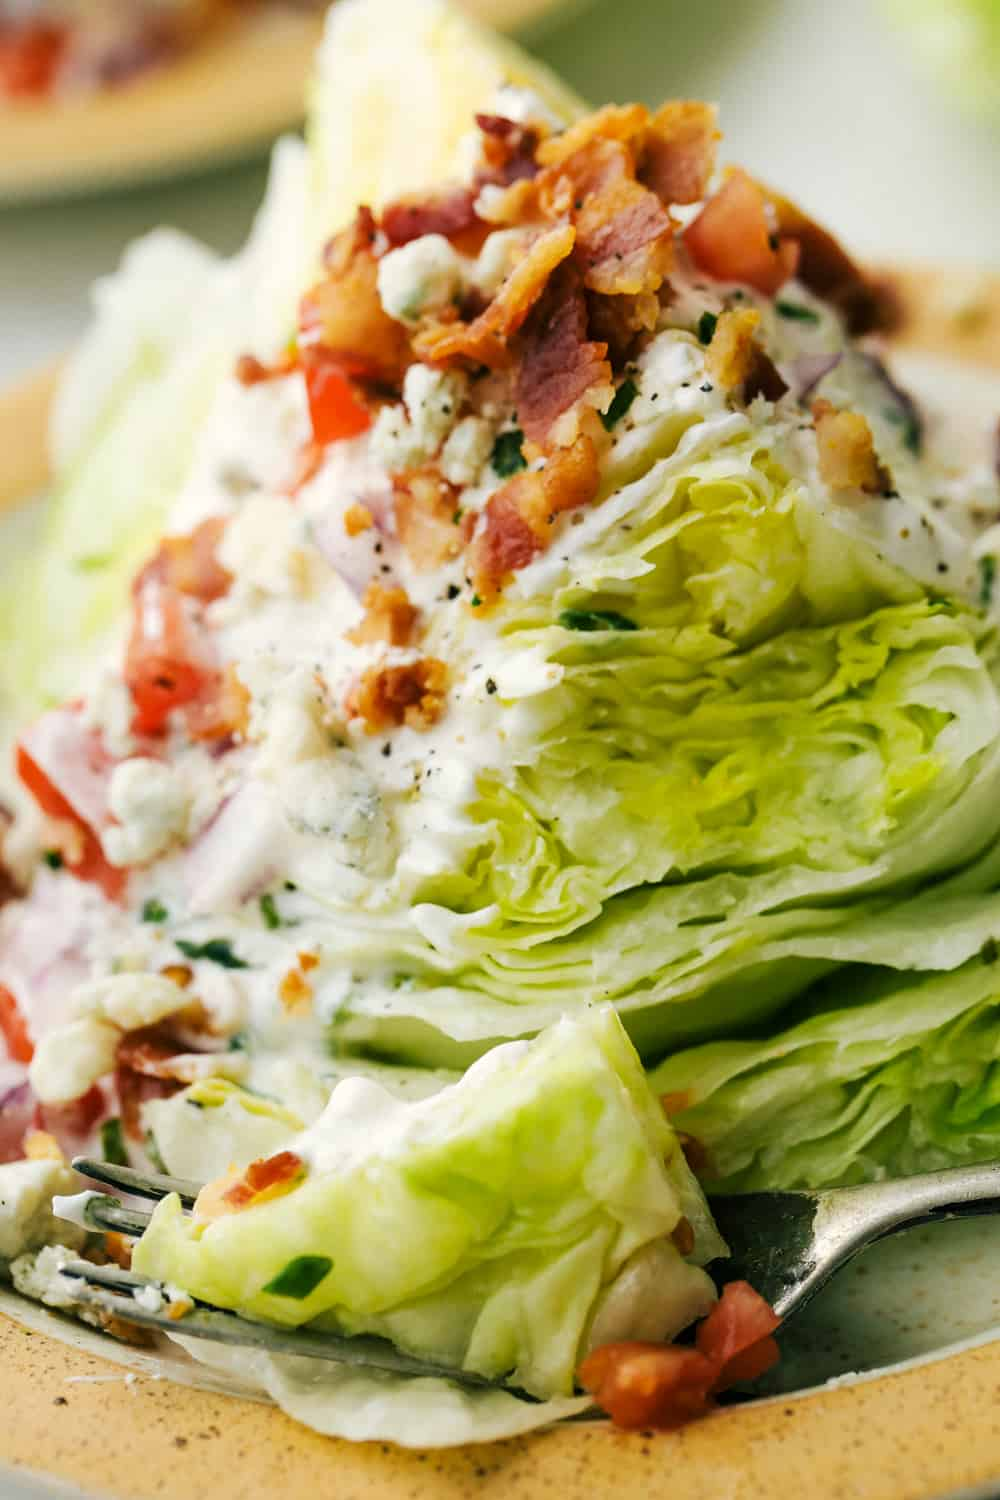 Up close picture of a wedge salad on a plate with a fork.